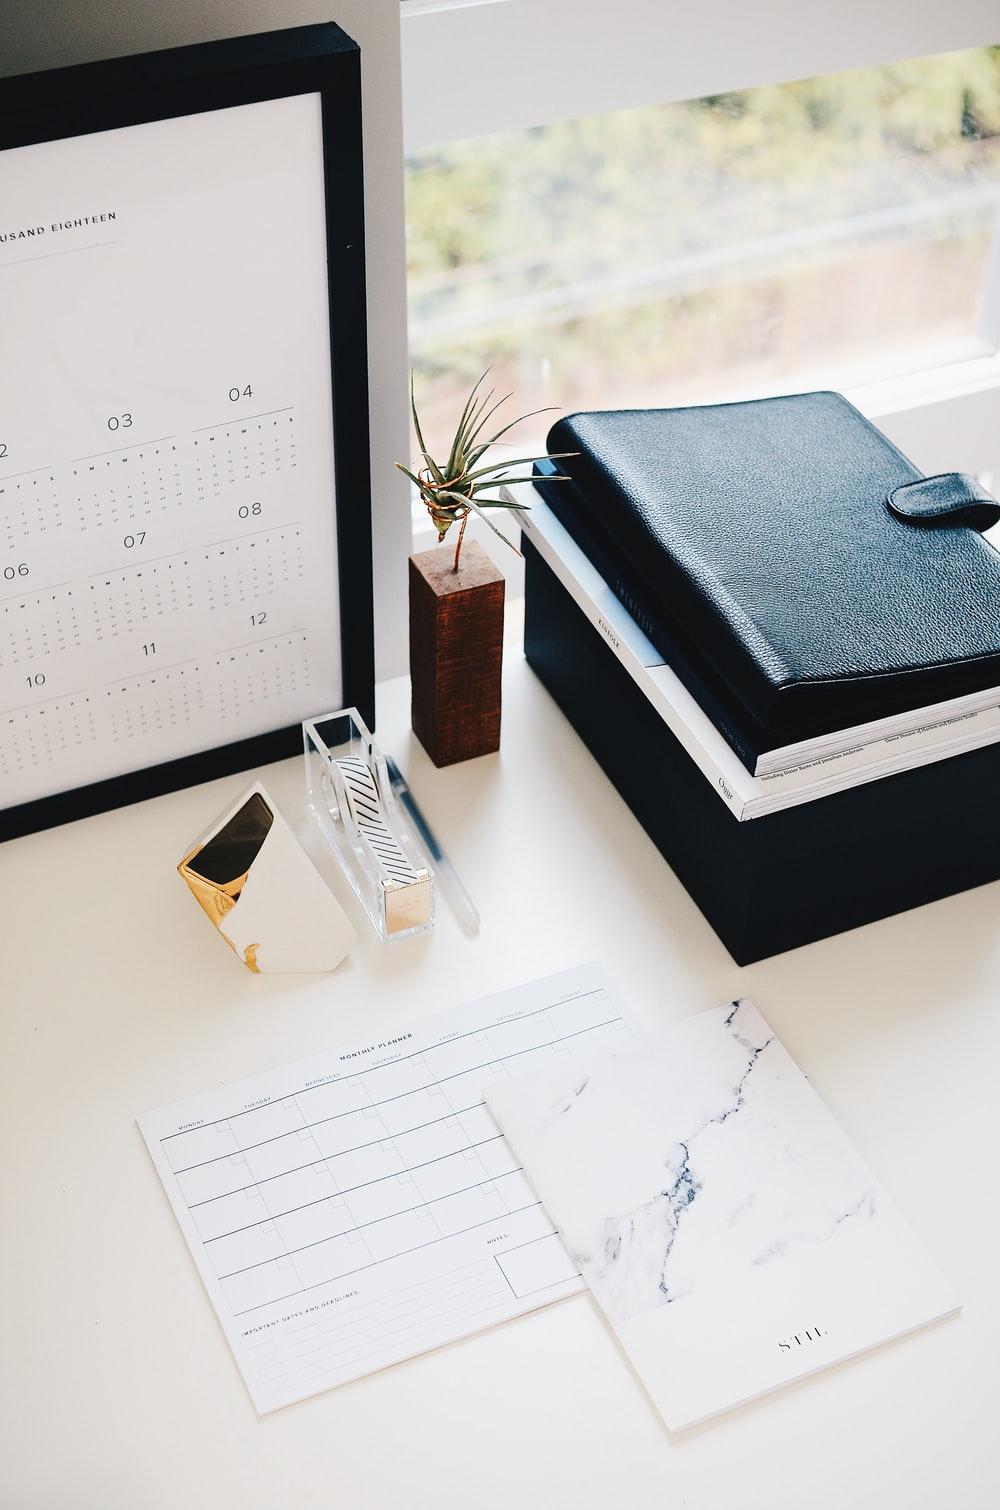 books and calendar on white table